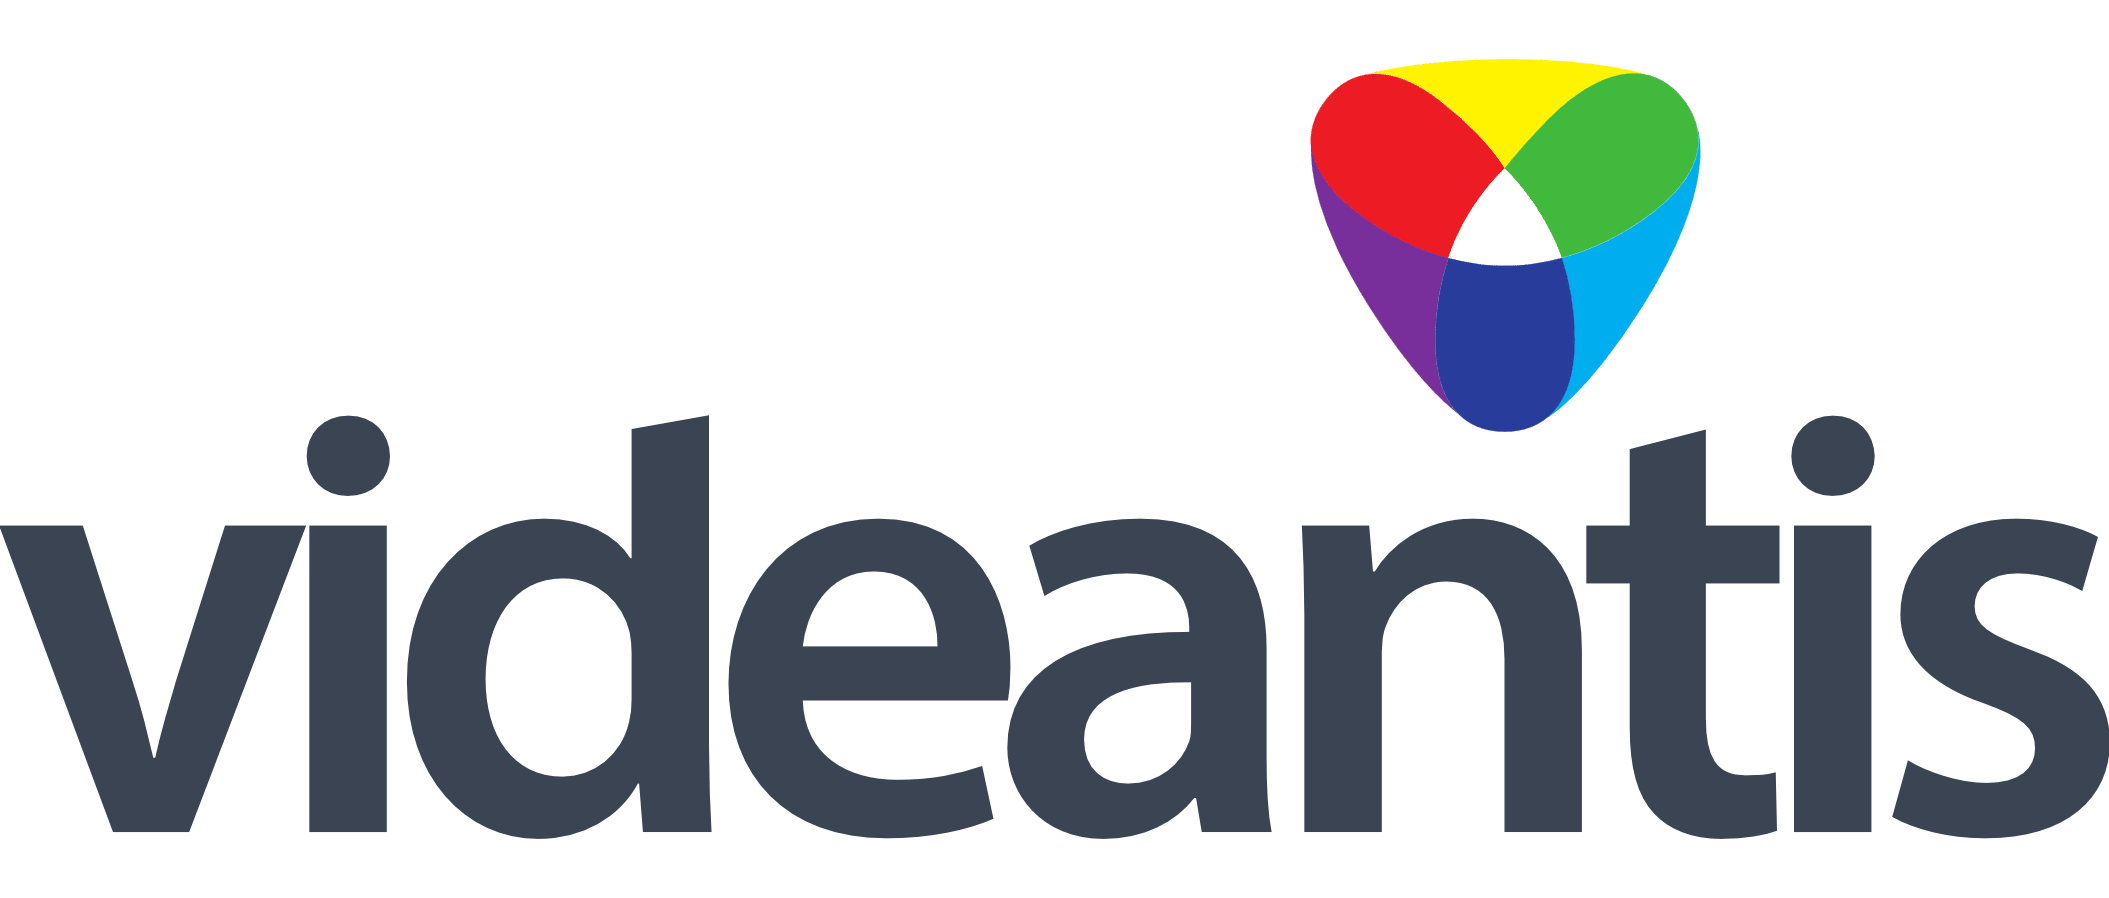 videantis – processors for deep learning, computer vision and video coding